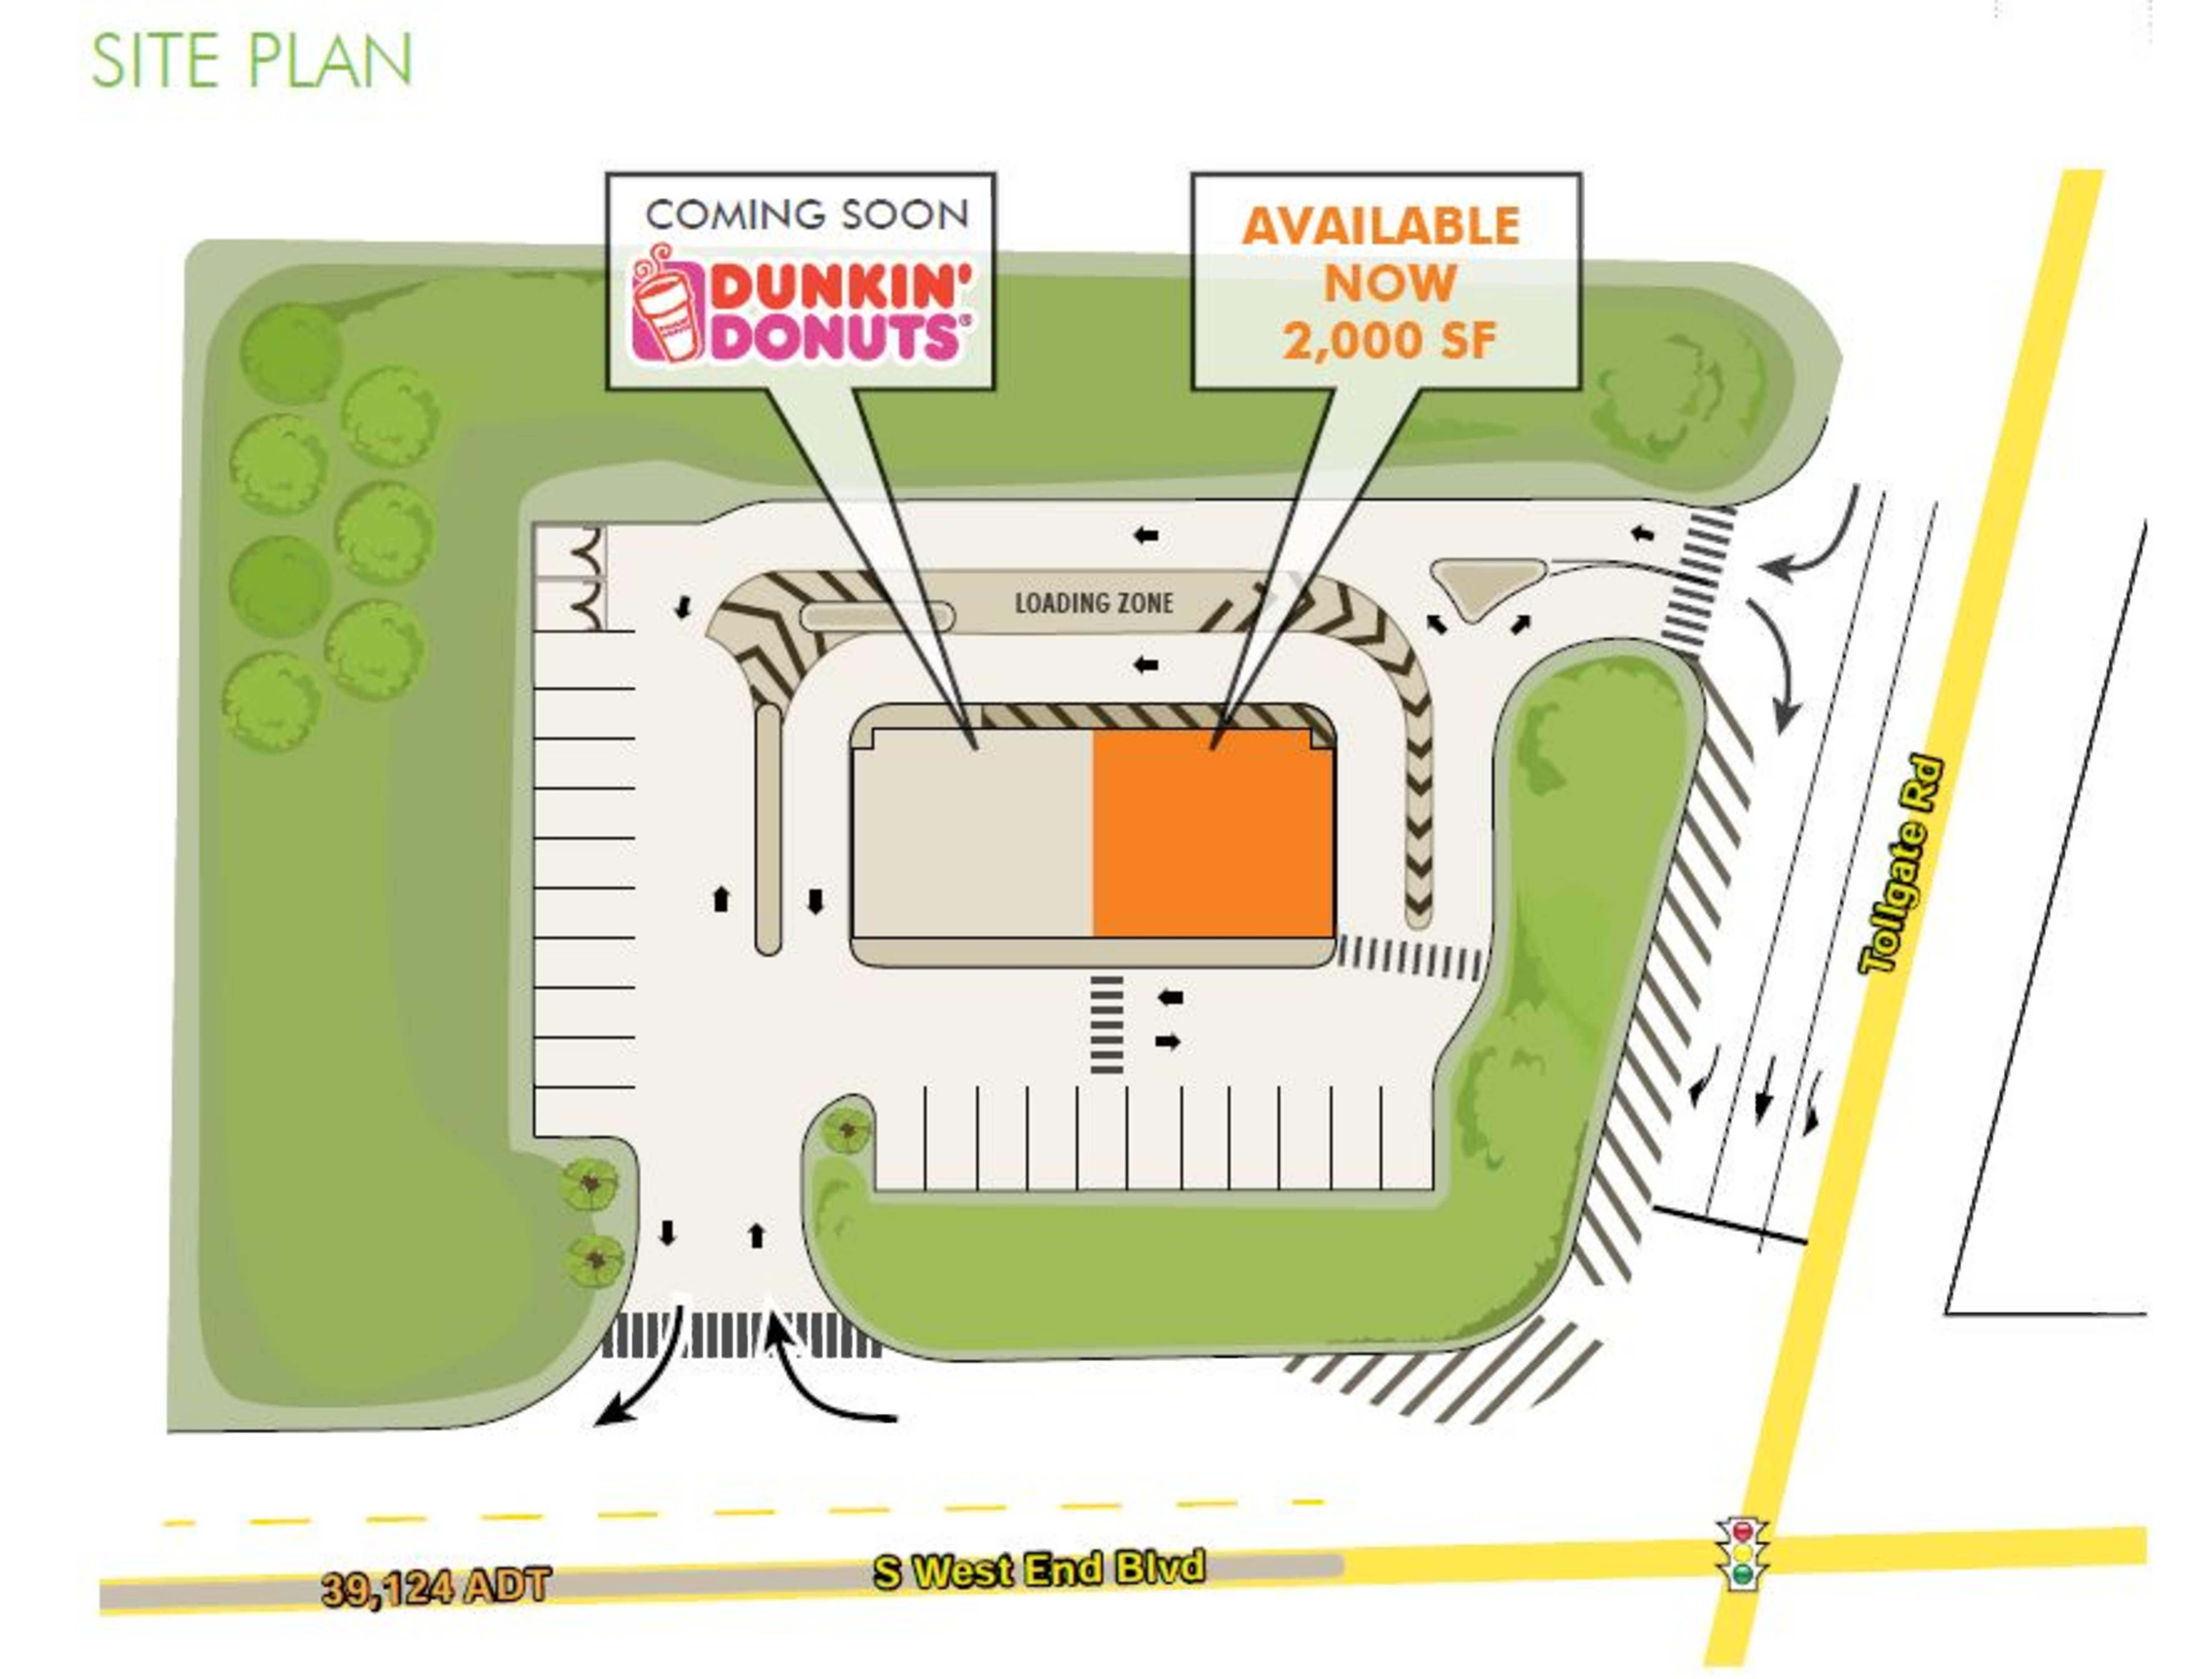 New Construction Available : site plan